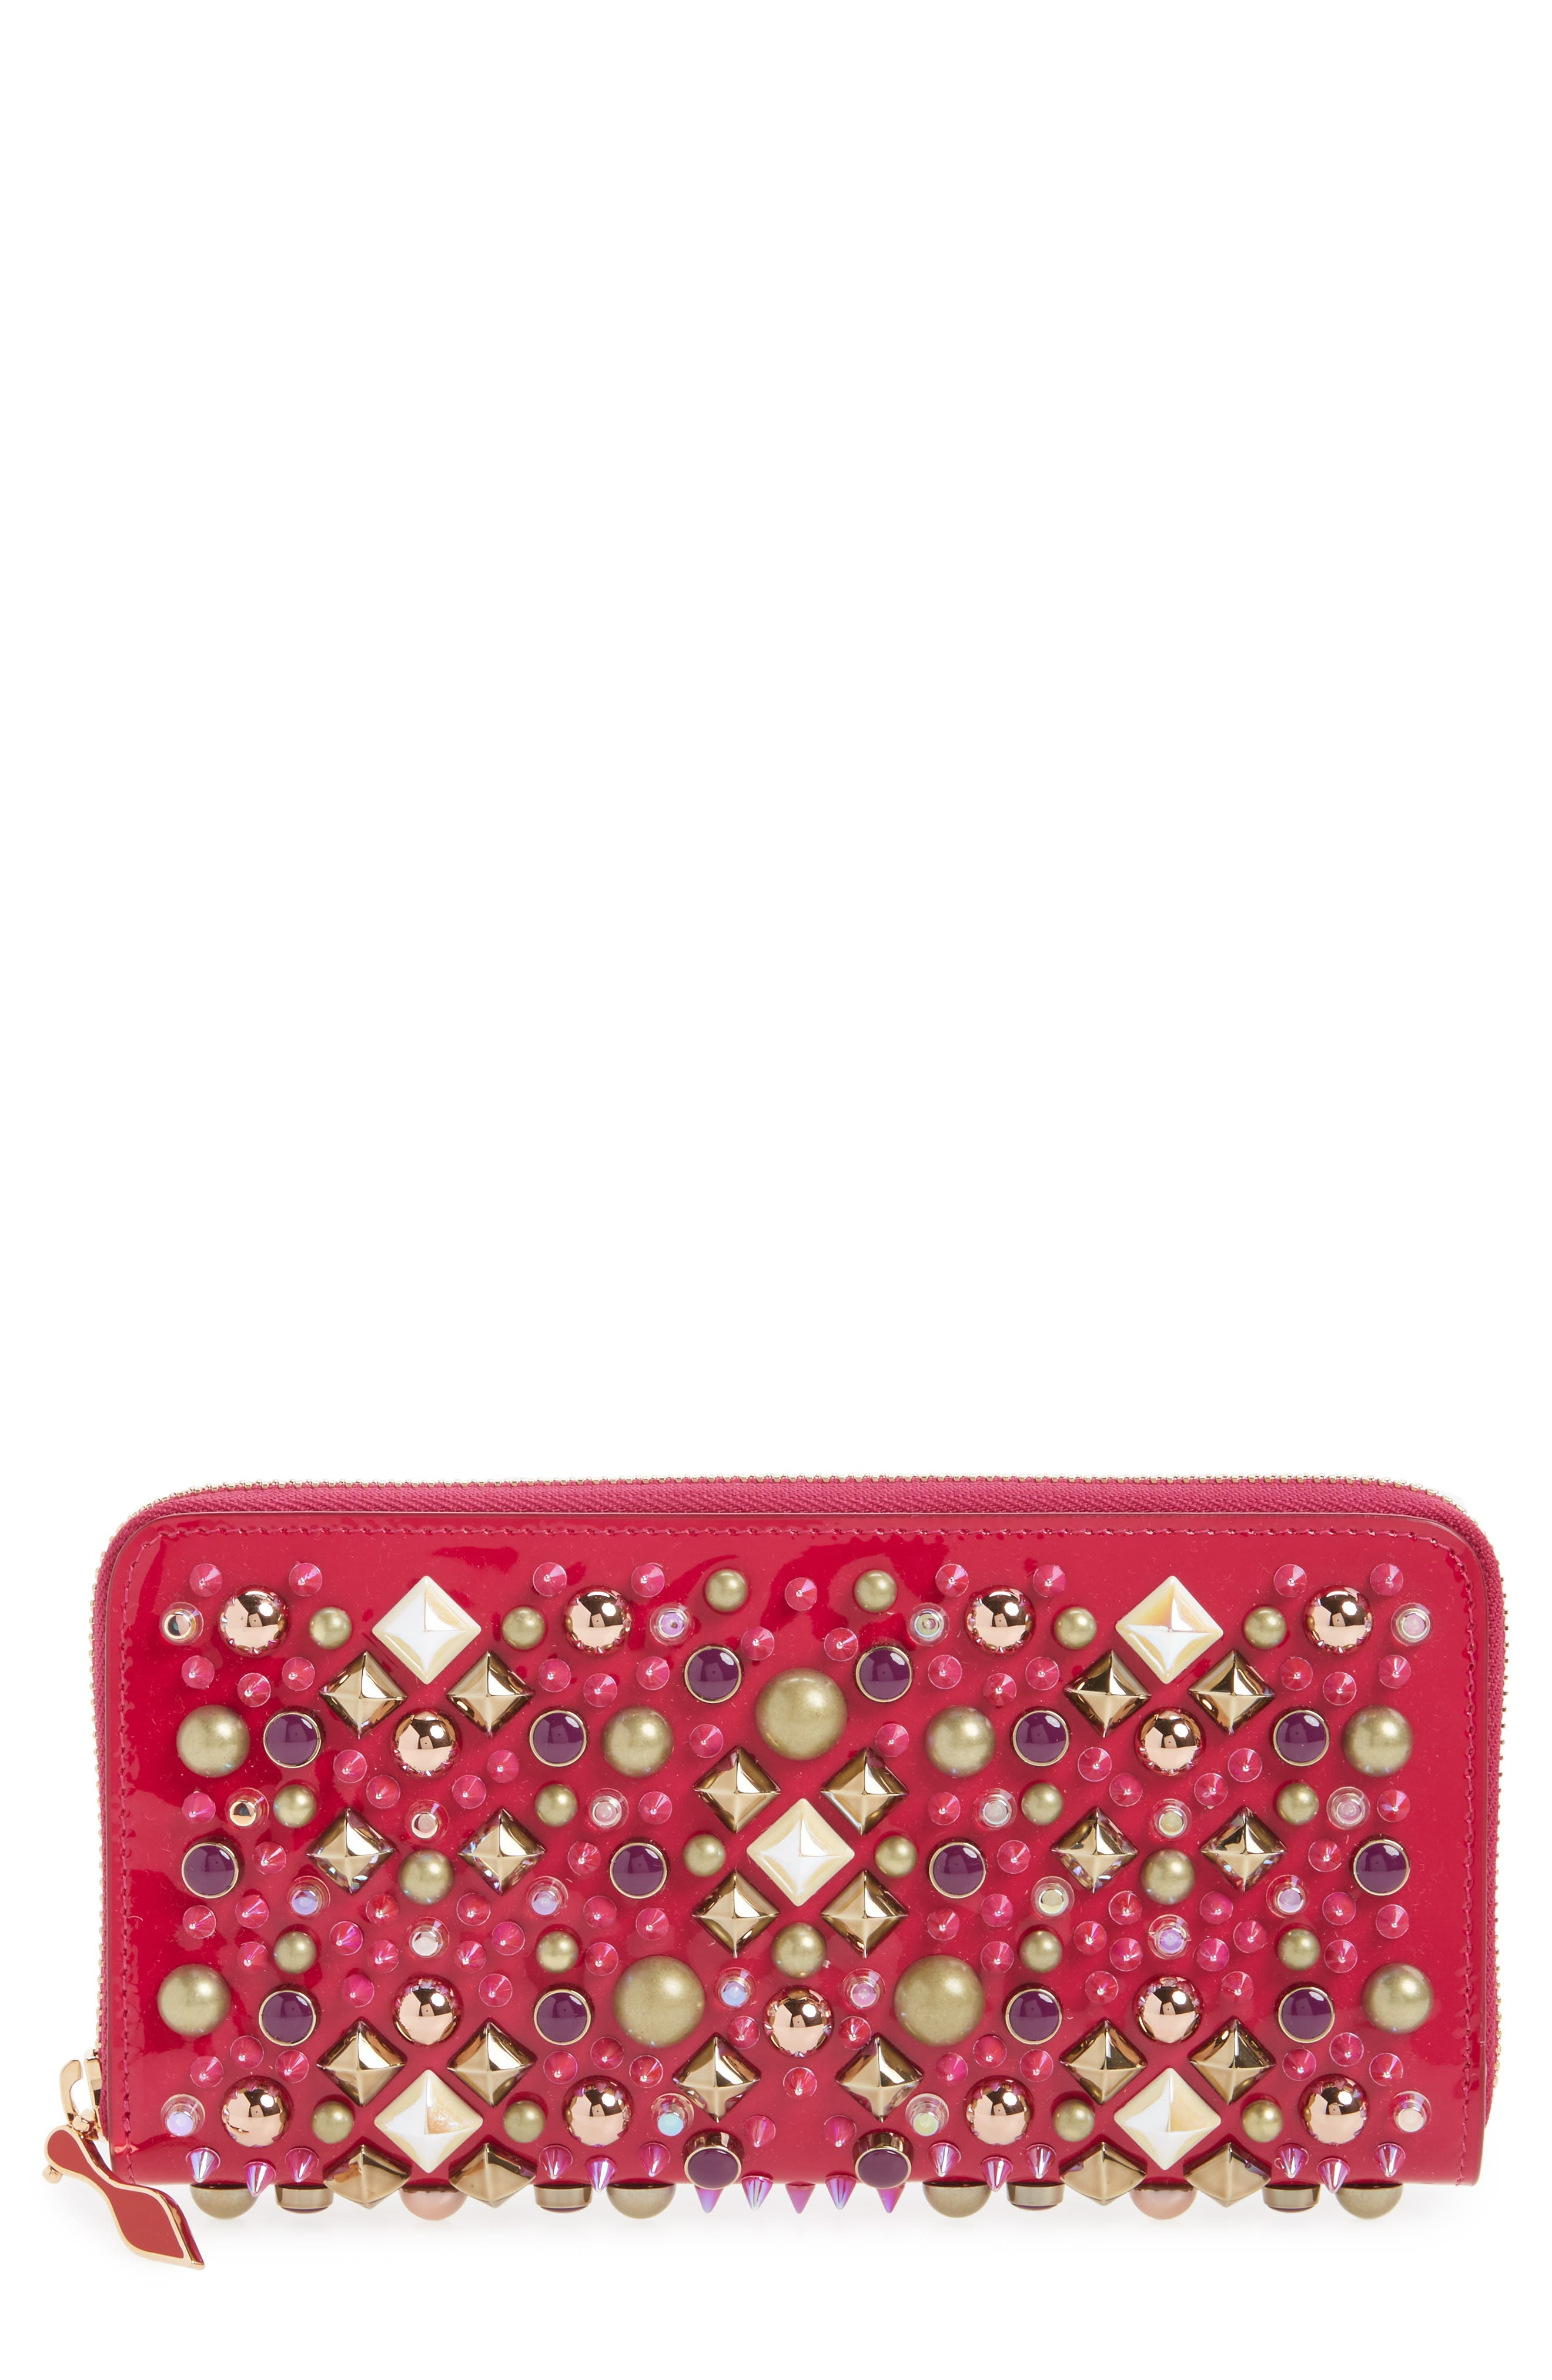 Panettone Spiked Patent Leather Wallet,                             Main thumbnail 1, color,                             693